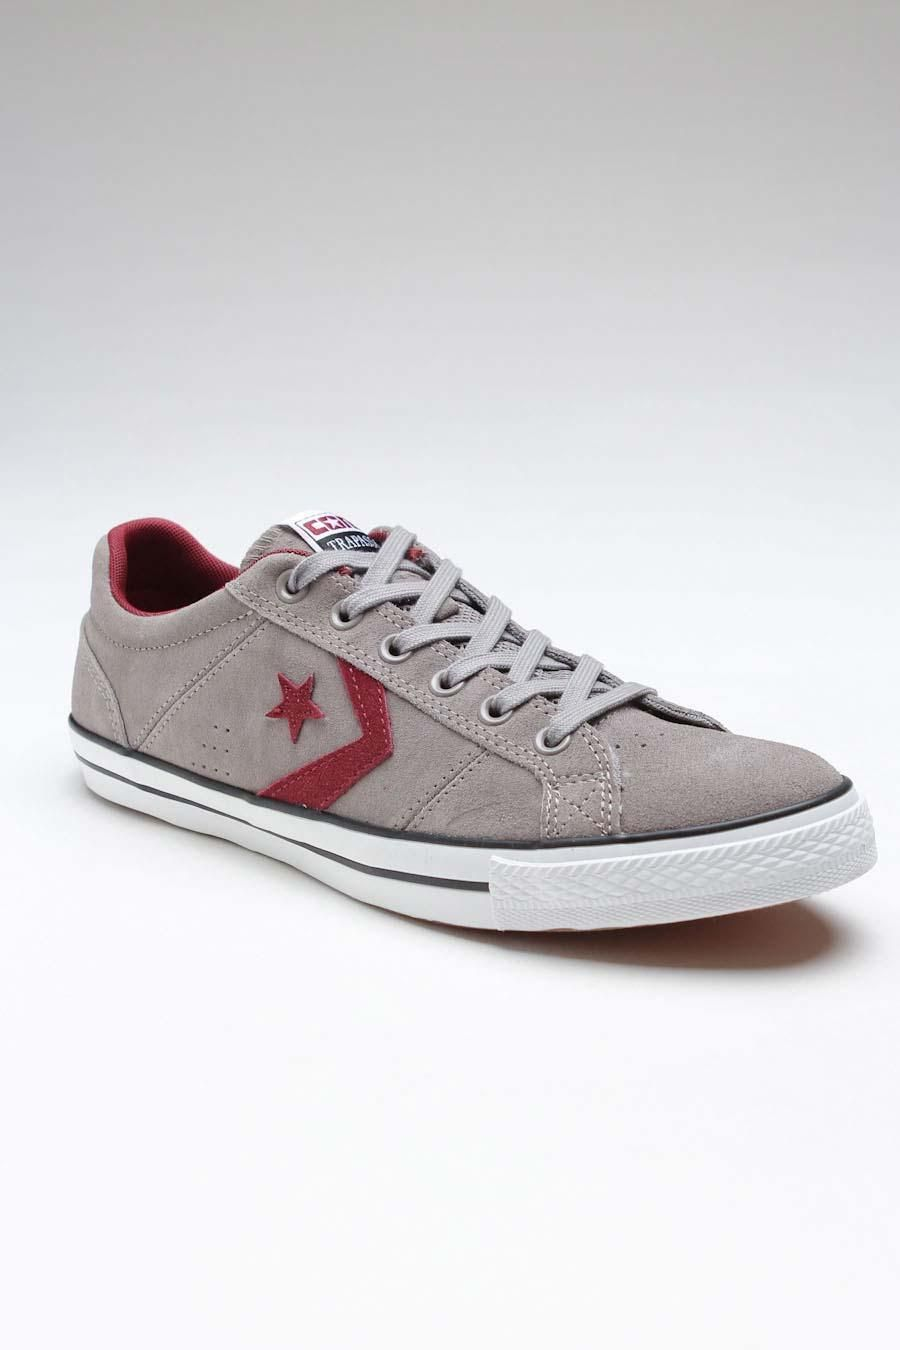 b5dc68487766 Converse Cons Trapasso OX Greaser Style